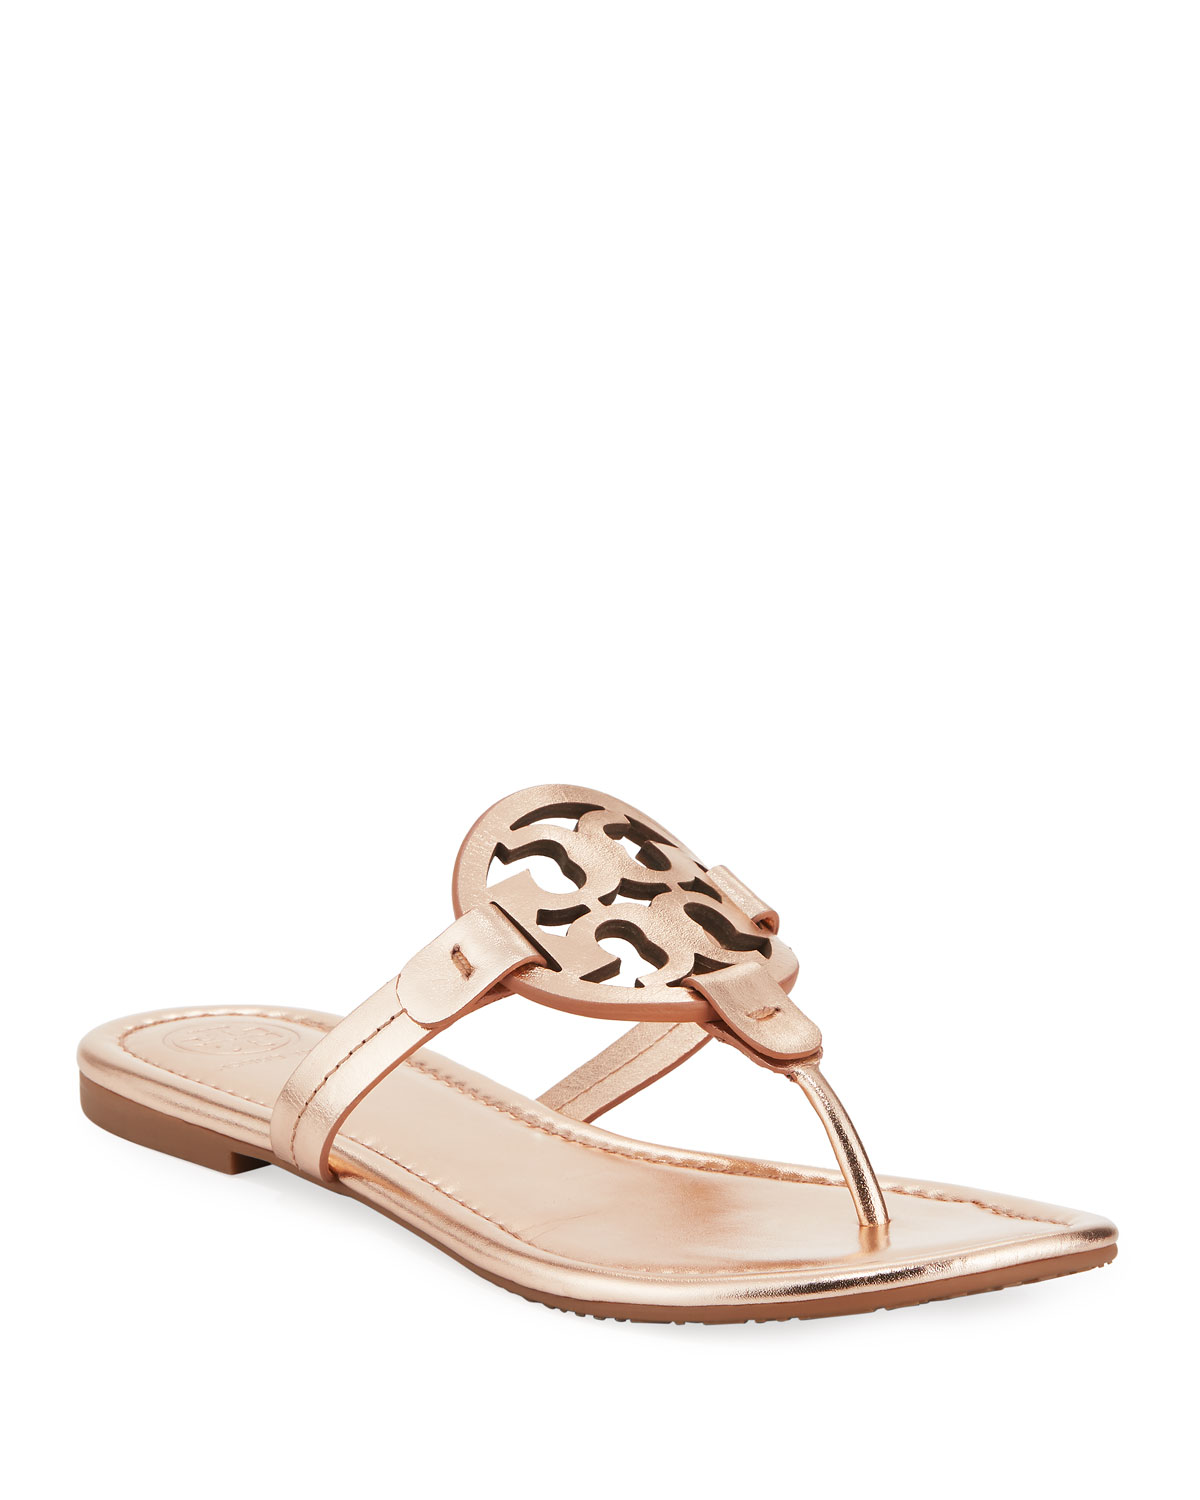 1f3dee5e65ef Tory Burch Miller Medallion Metallic Leather Flat Slide Sandal ...